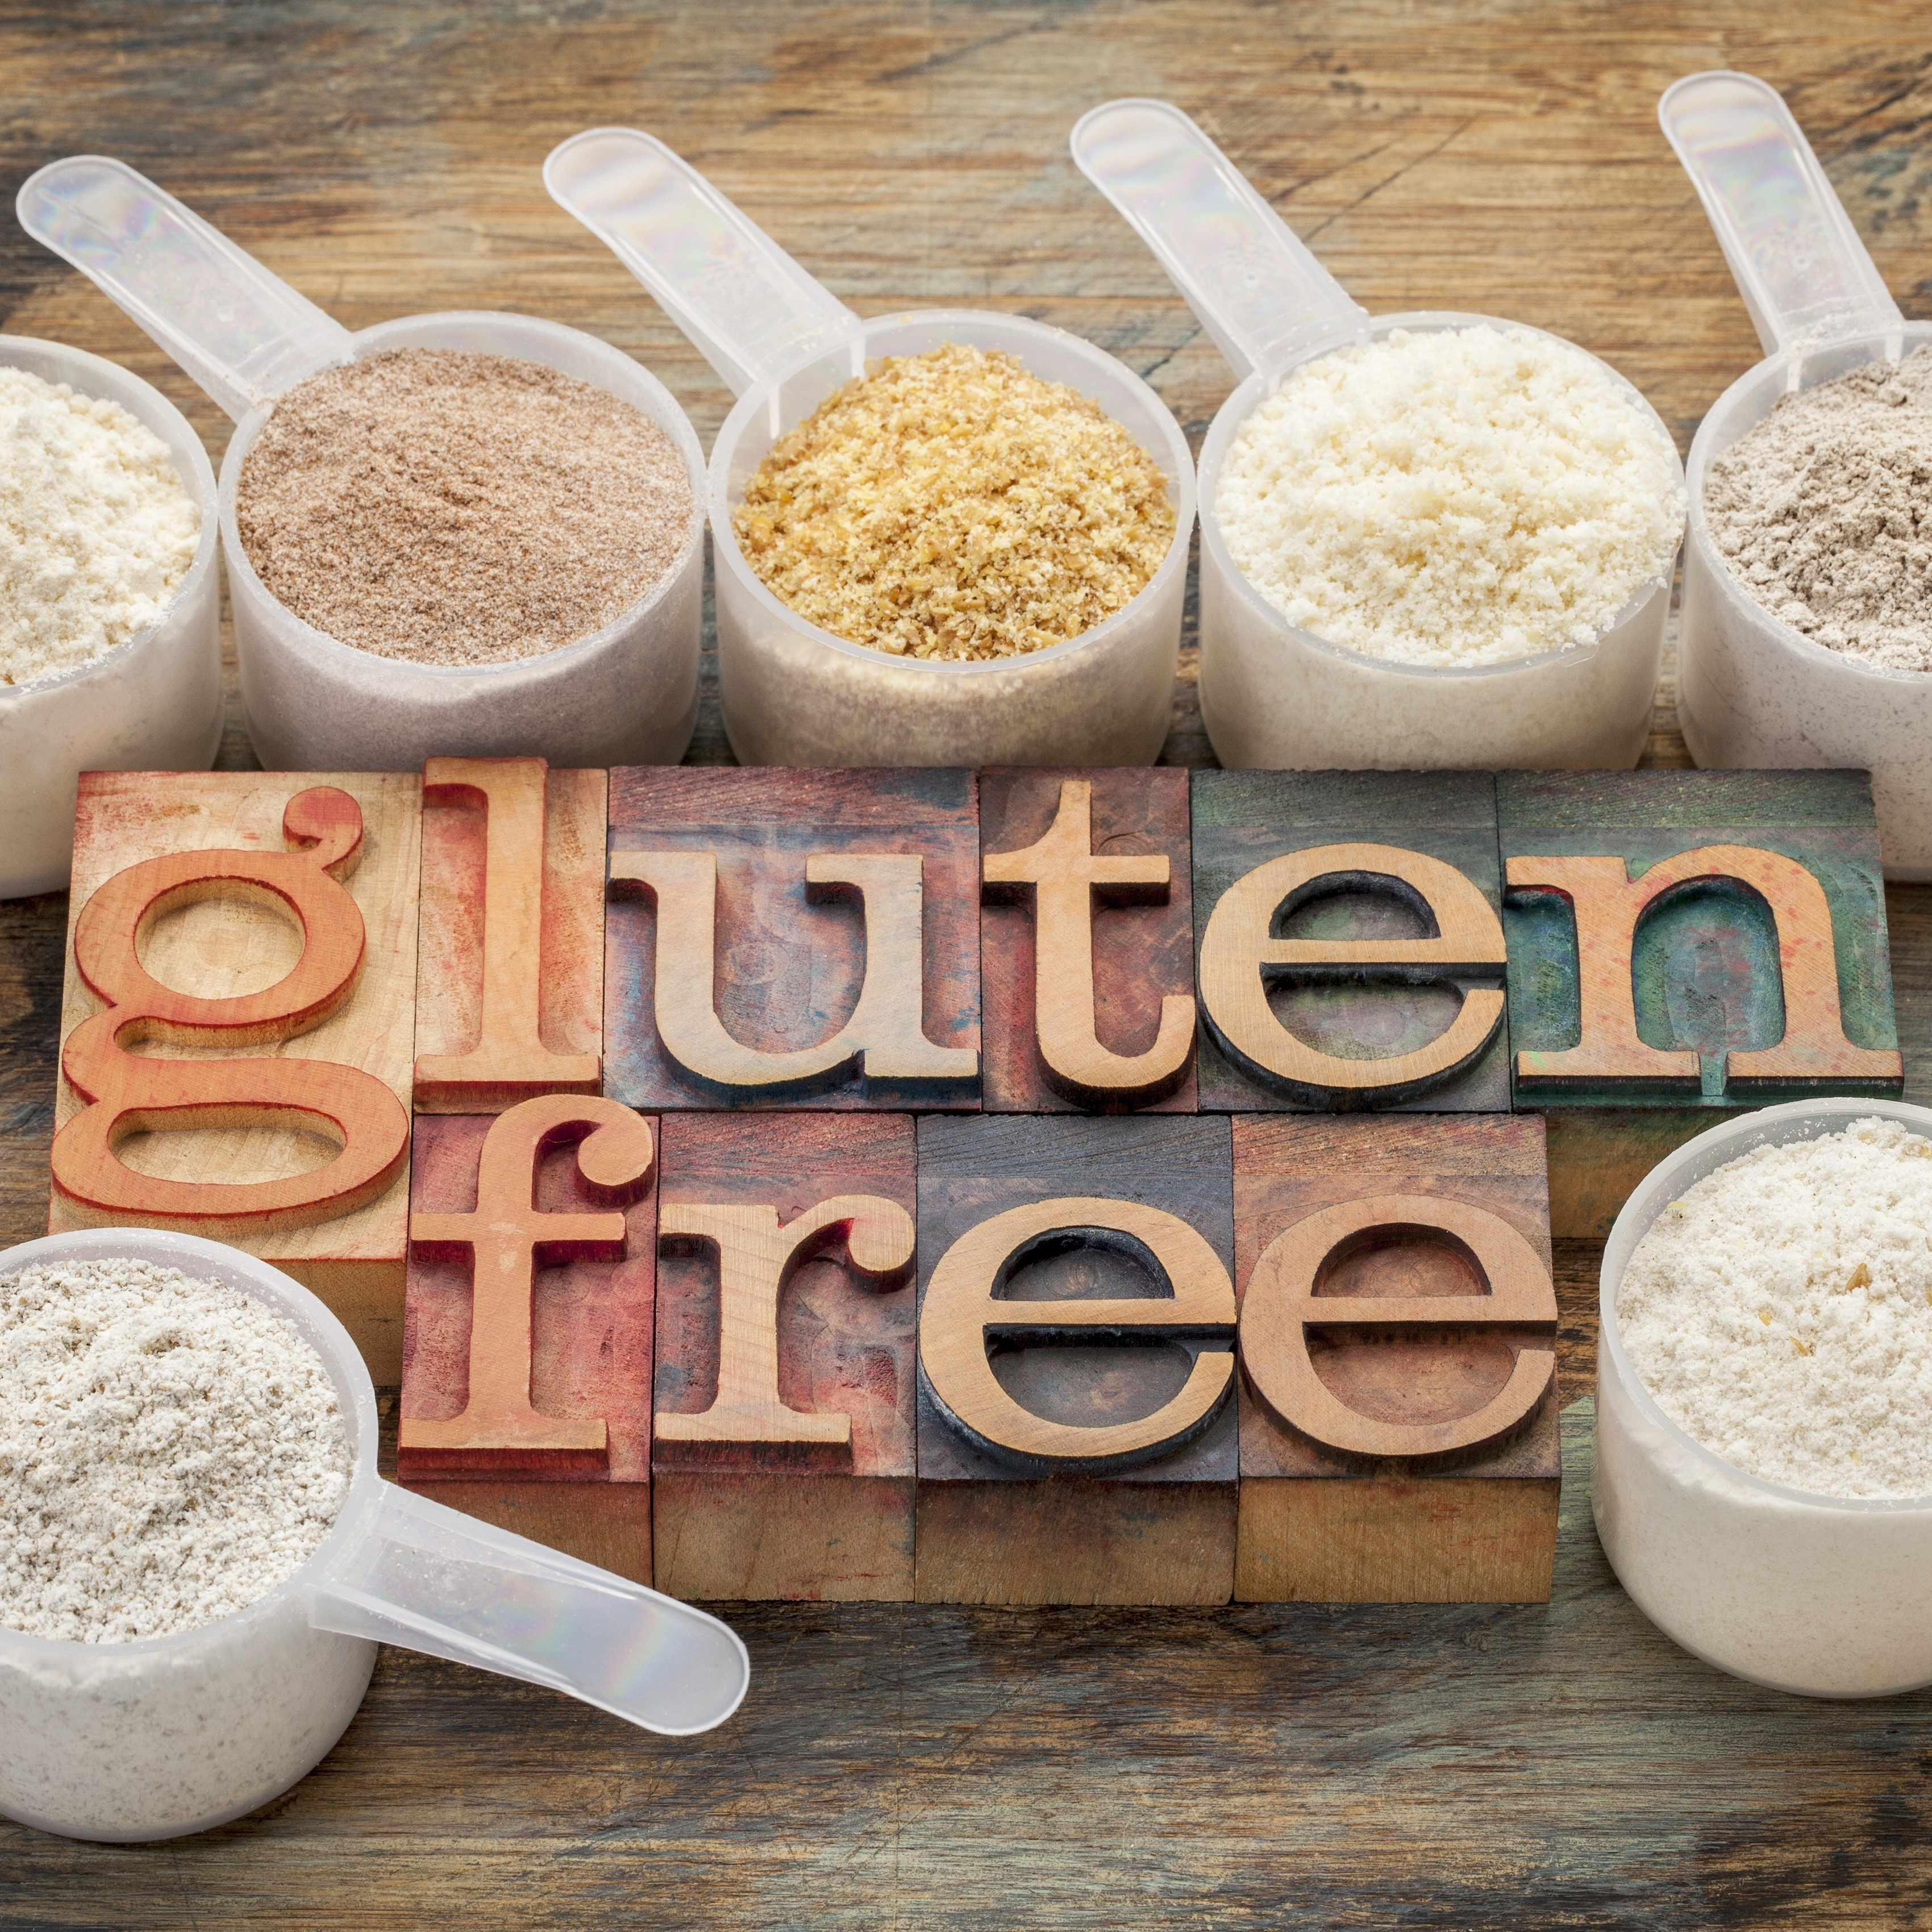 the words gluten free surrounded by scoops filled with various gluten free flours, including almond, coconut, teff, flaxseed meal, rice and buckwheat